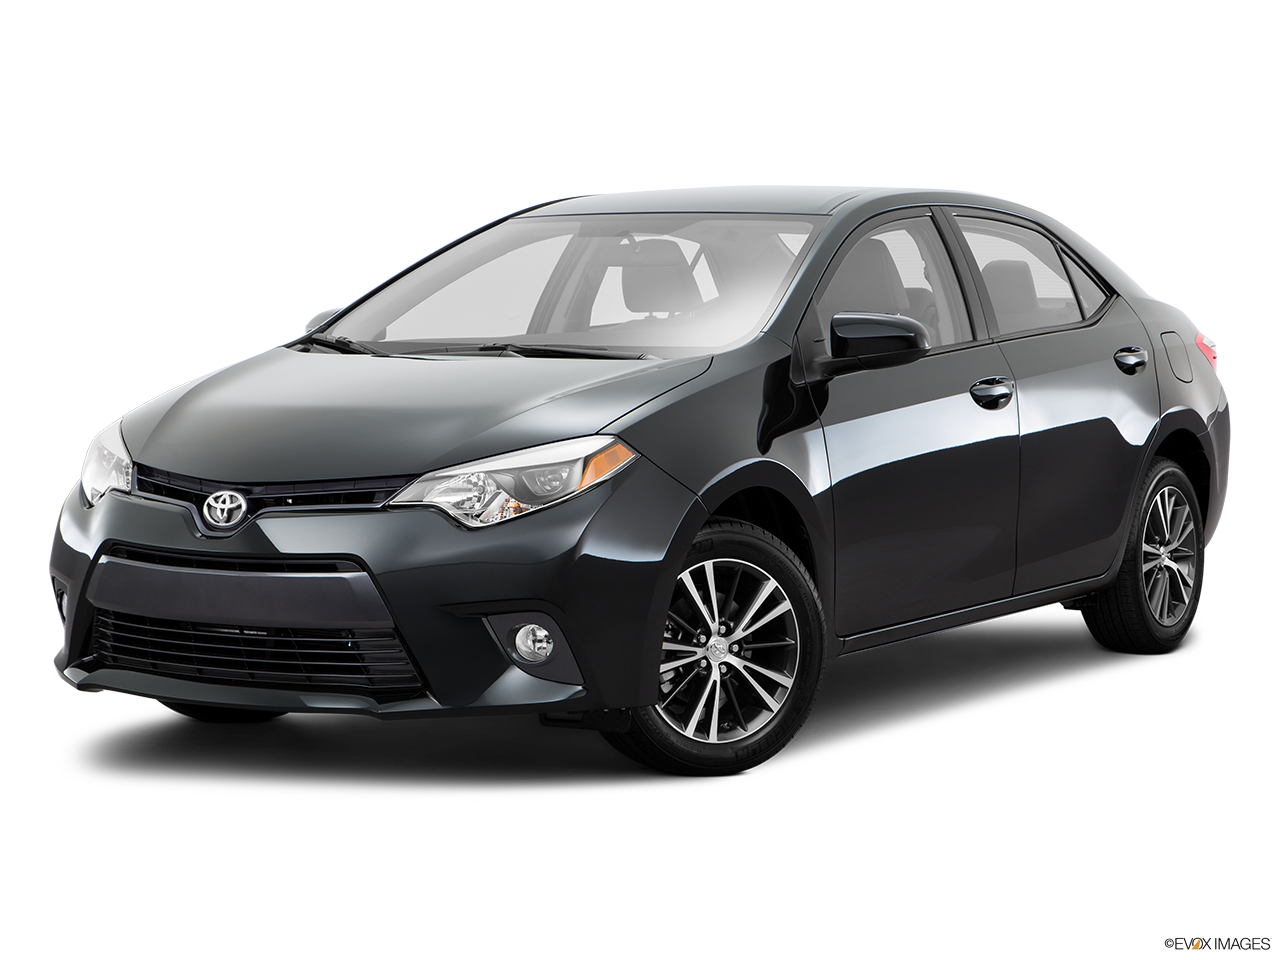 2016 toyota corolla black 200 interior and exterior images. Black Bedroom Furniture Sets. Home Design Ideas